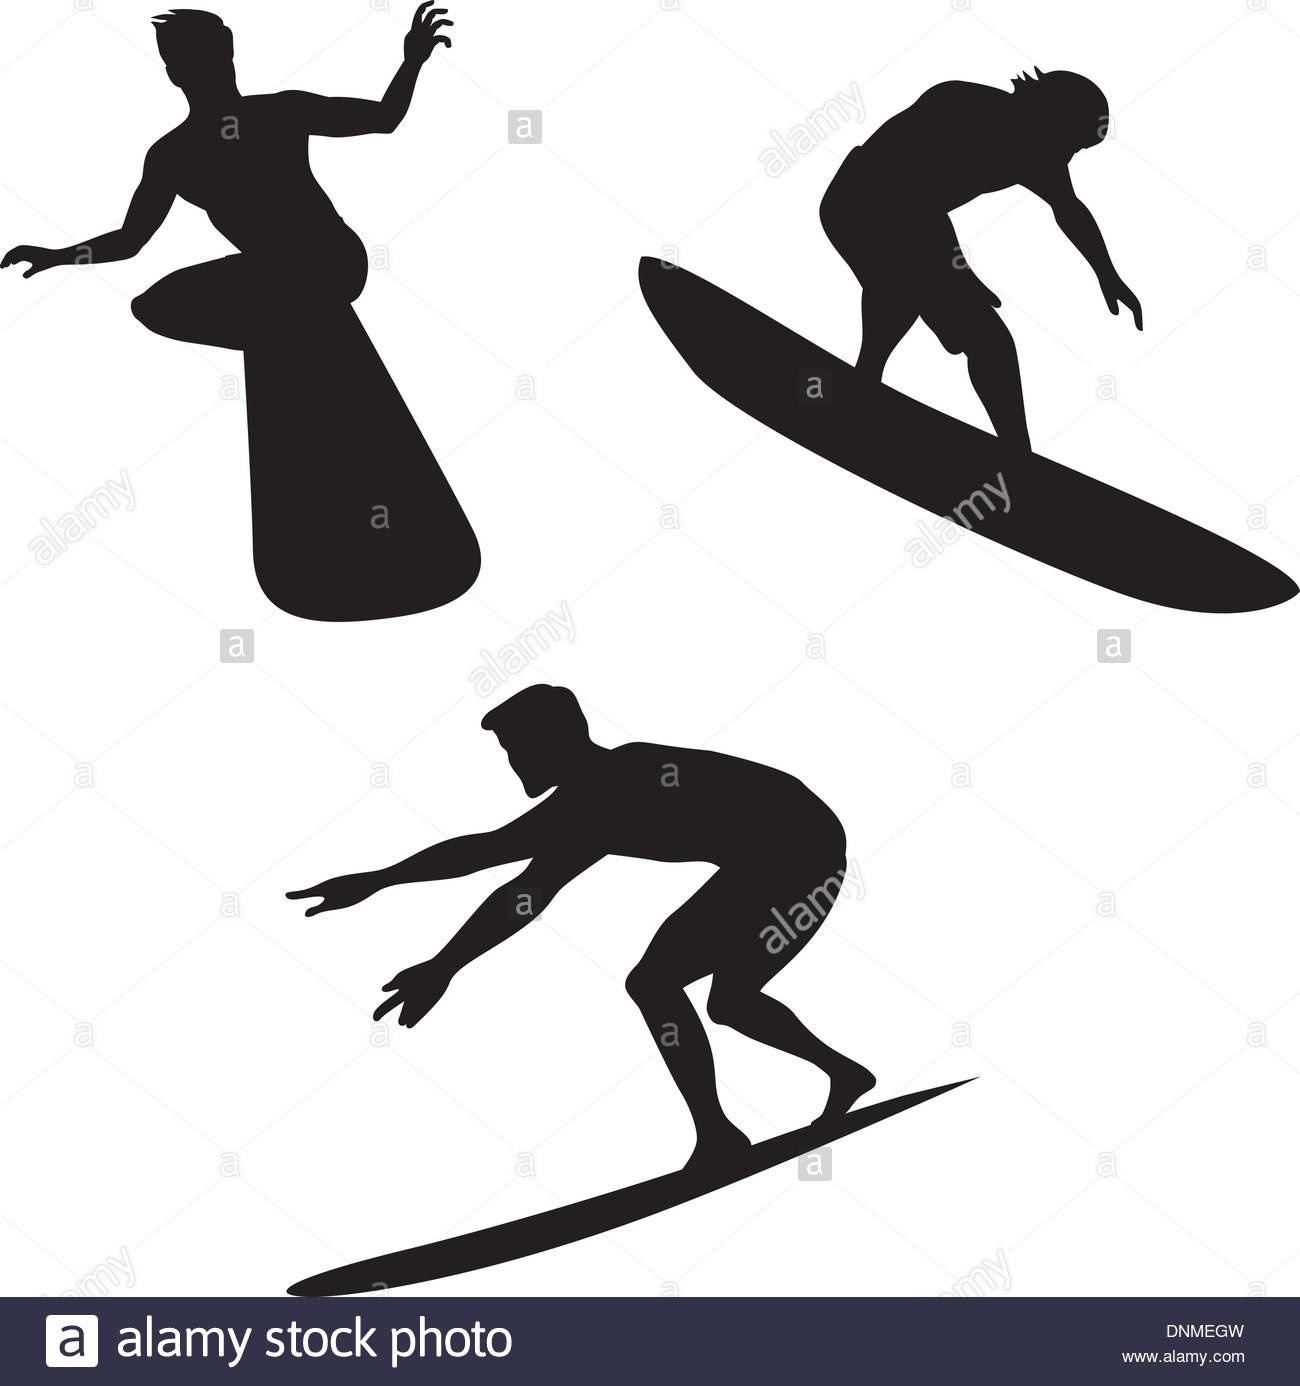 1300x1386 Illustration Of Three Surfers' Silhouettes In Various Positions